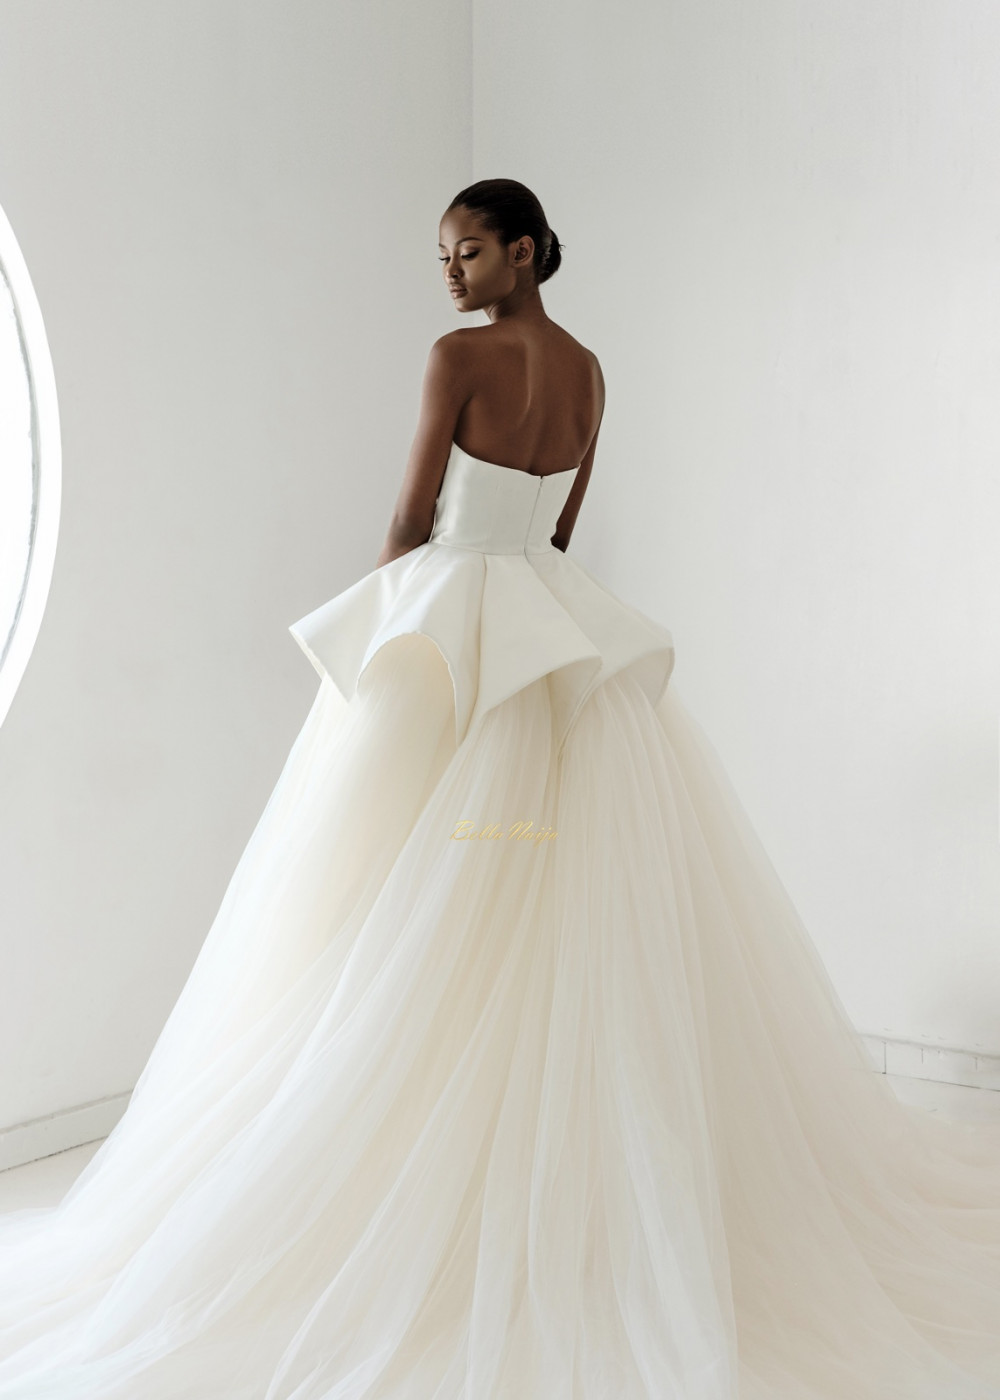 BN Bridal Andrea Iyamah Releases Its 2018 Bridal Collection